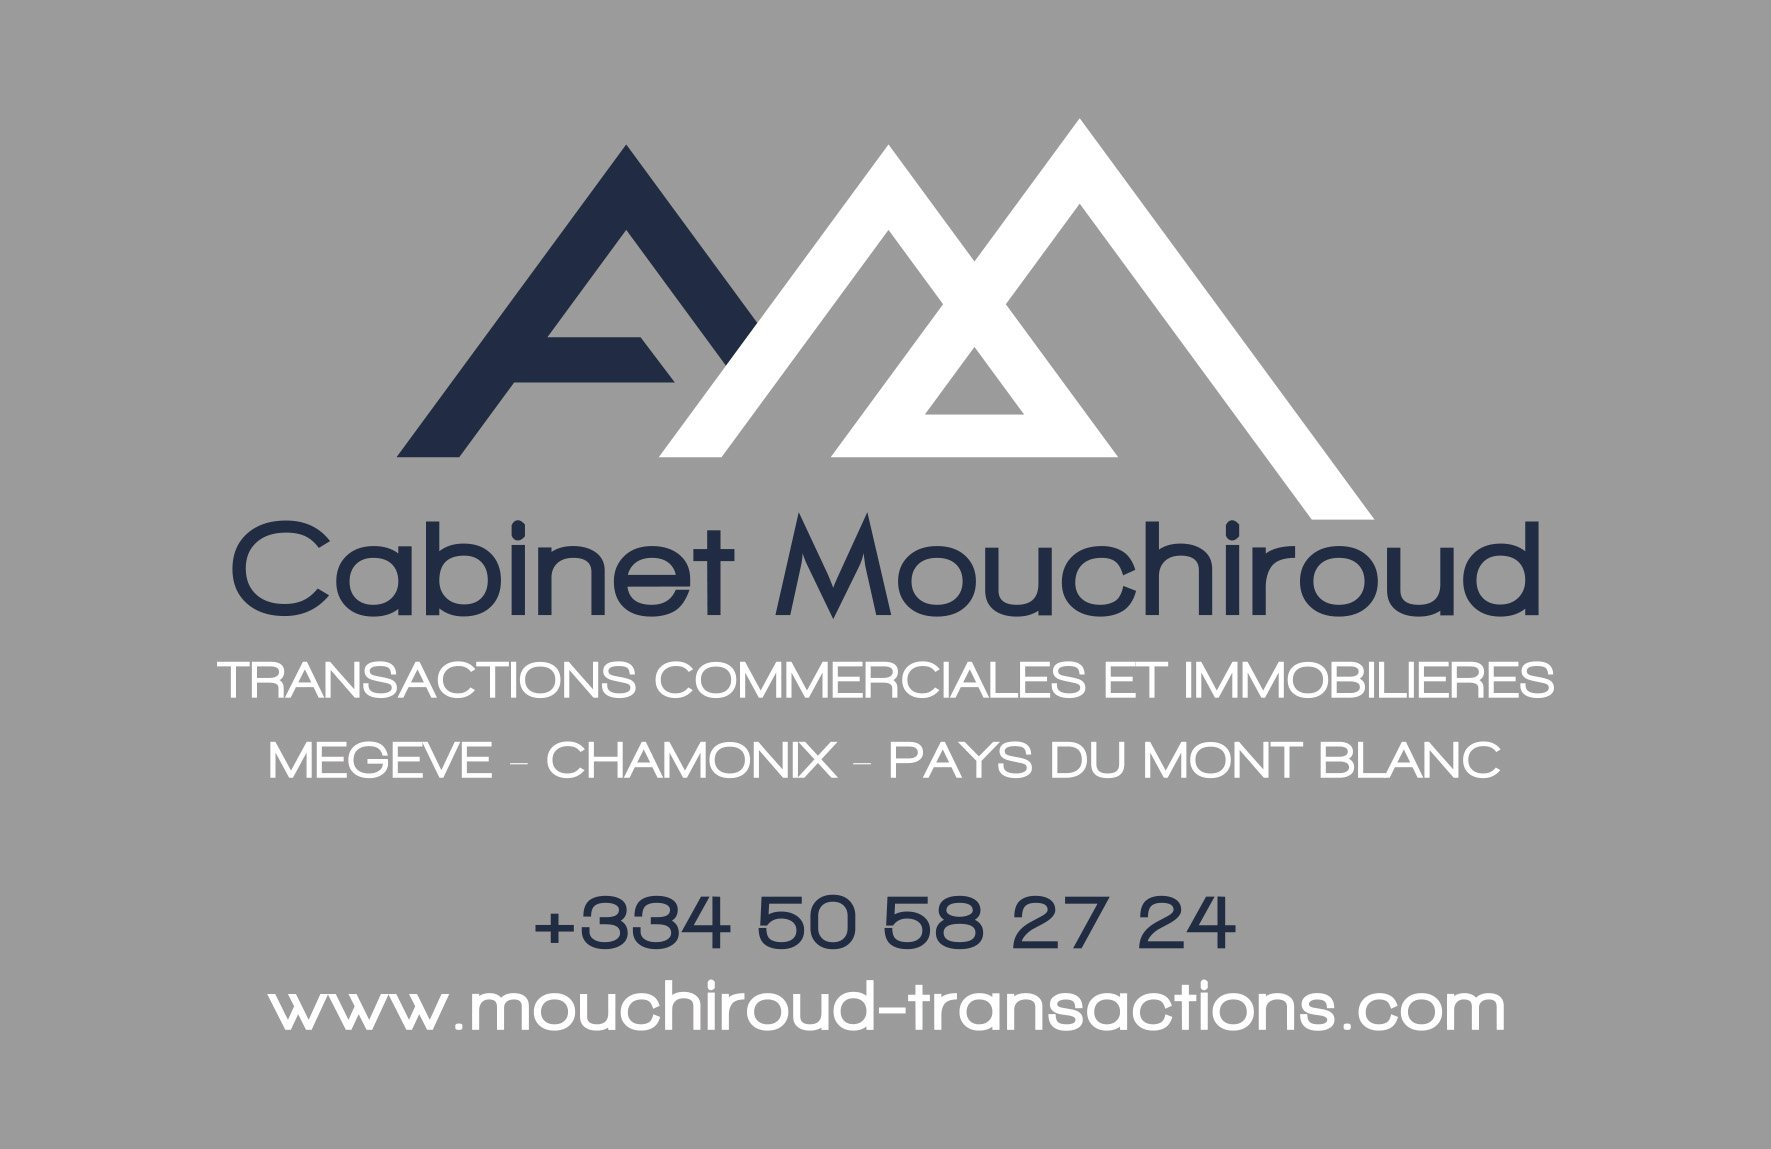 Sale Right to the lease - Chamonix-Mont-Blanc